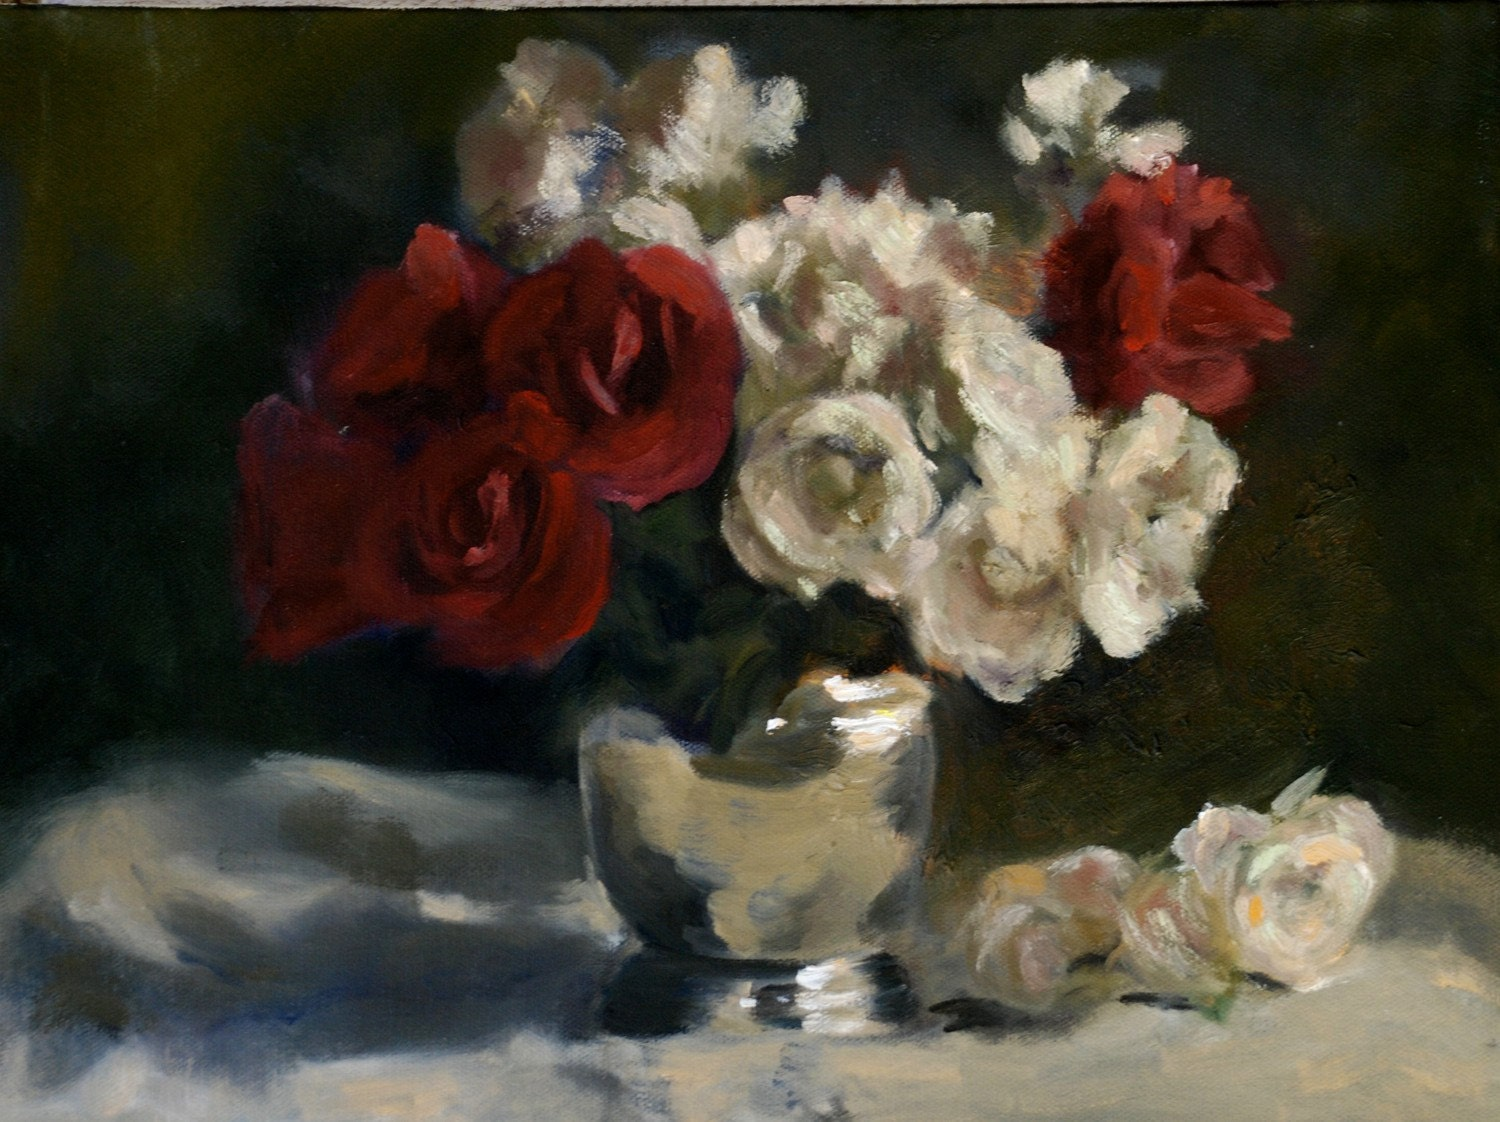 Peaceful Bedrooms Hung With Rosies Paintings : Peaceful Bedrooms Hung With Rosies Paintings : Roses with Silver Vase ...